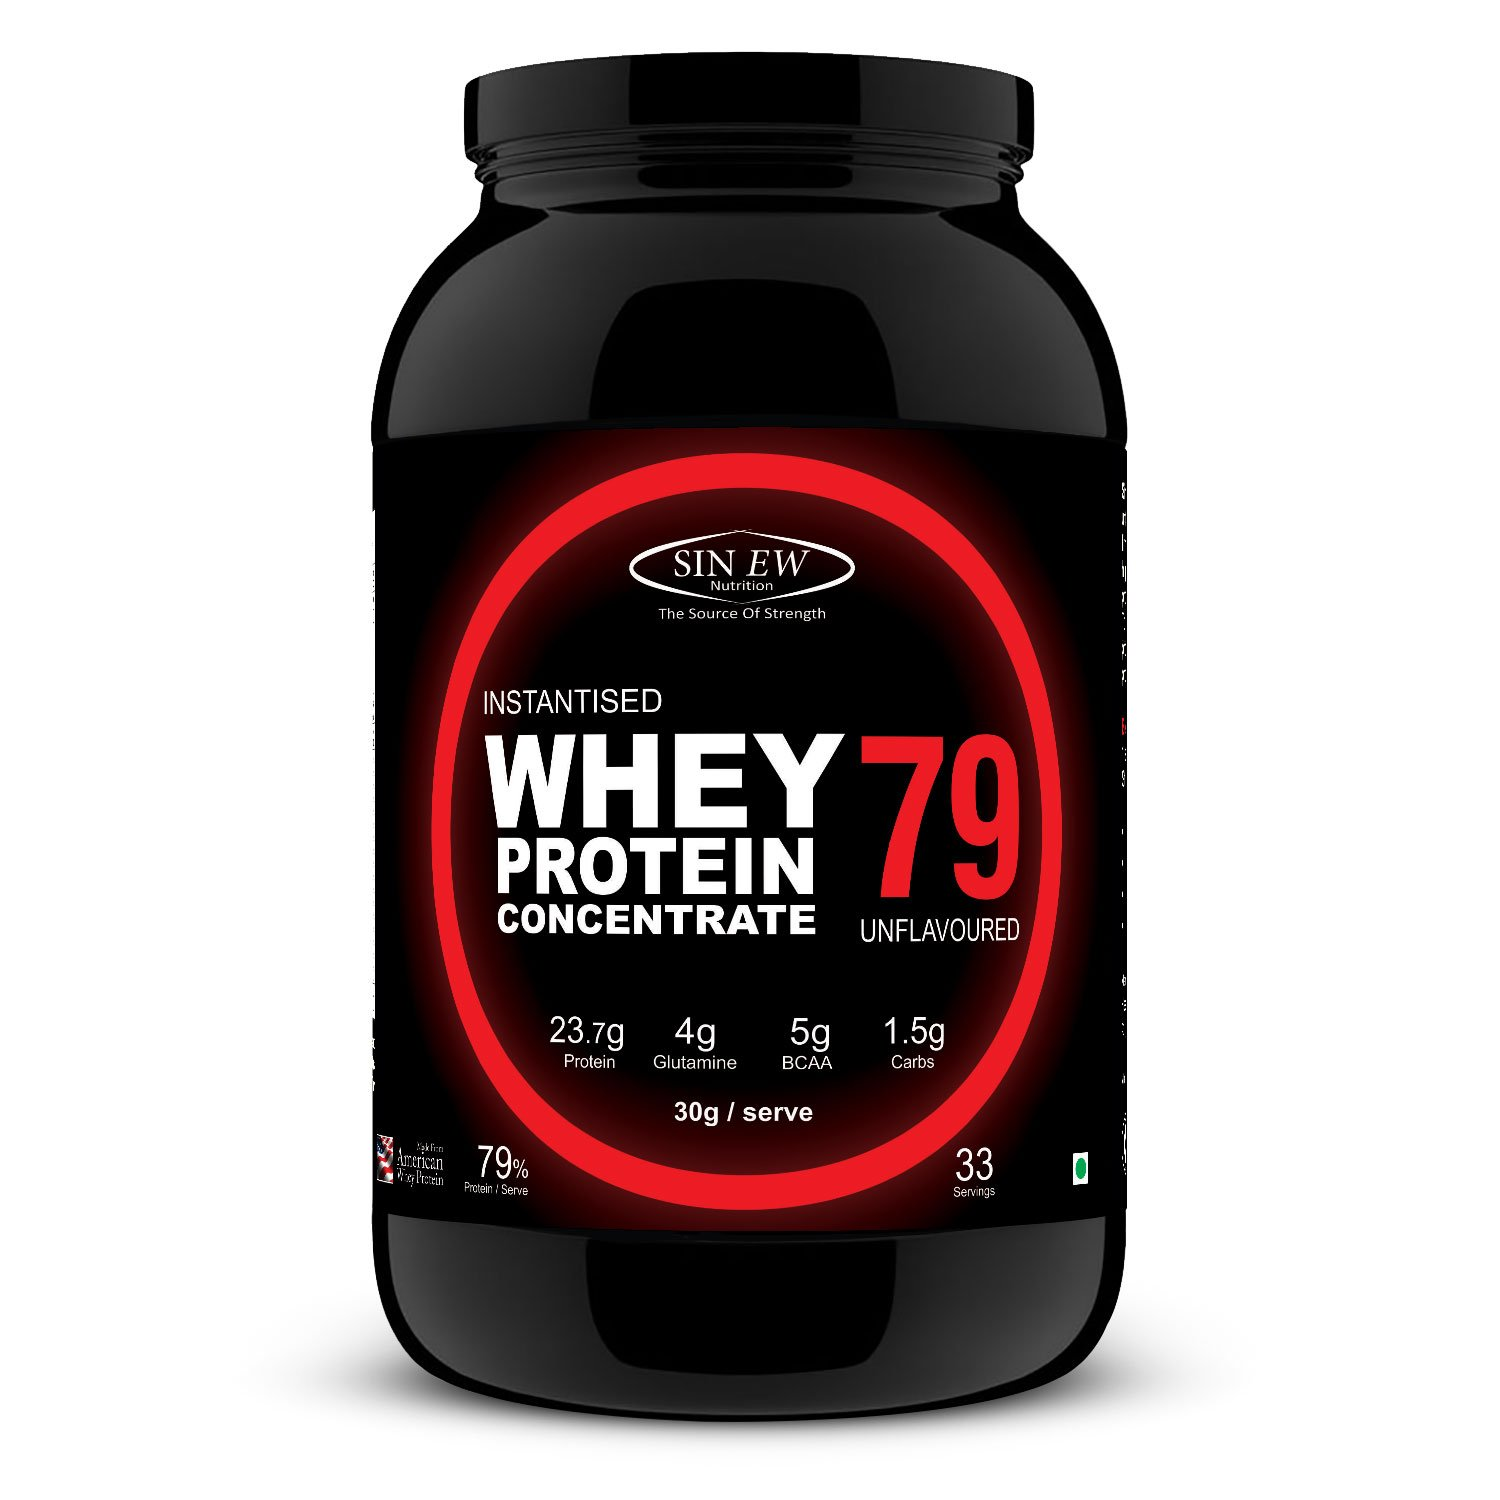 Sinew Nutrition Instantised Whey Protein Concentrate 79%, 1